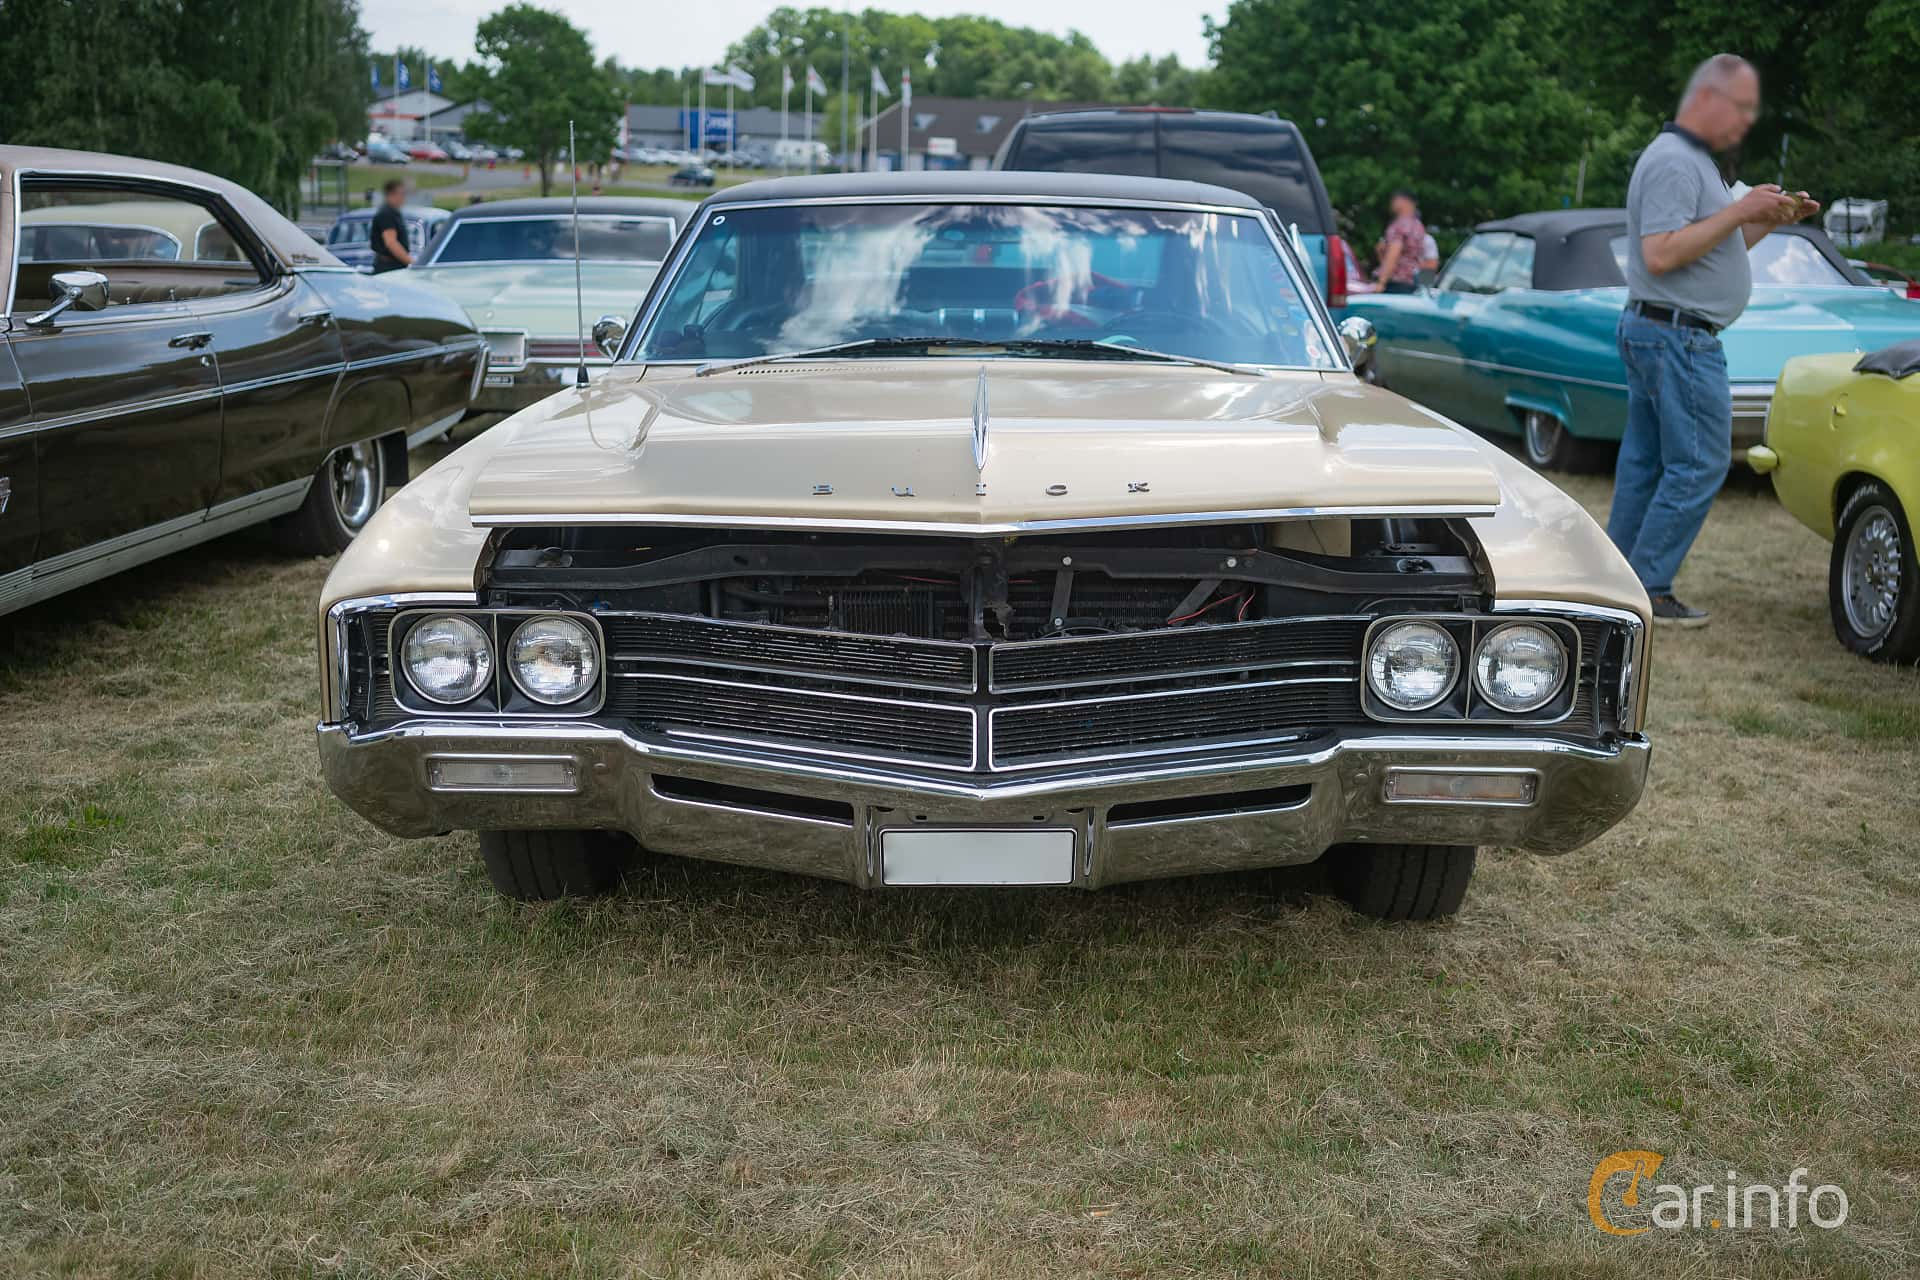 2 Images Of Buick Wildcat Custom Sport Coup 70 V8 Automatic 365hp Door Hardtop Front 365ps 1967 At Hssleholm